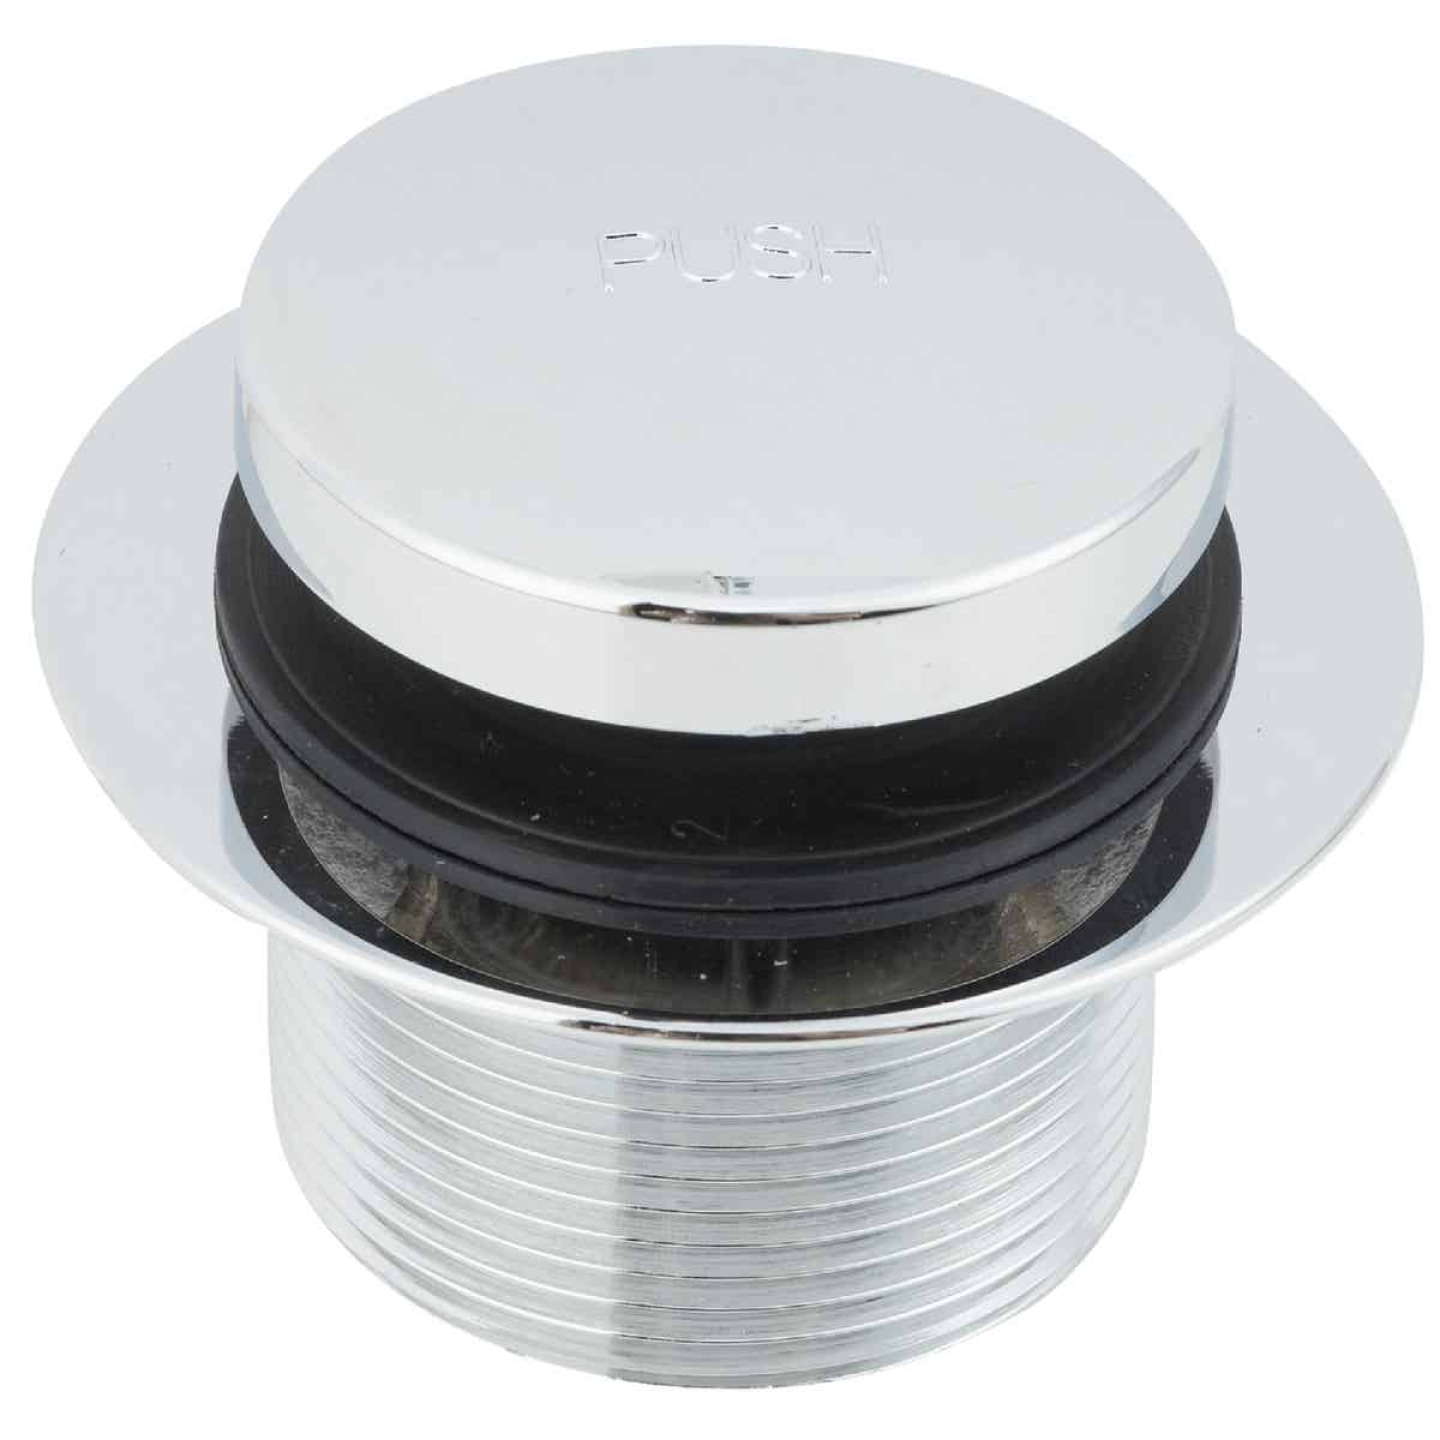 Do it 1-7/8 In. to 2-1/4 In. Bathtub Drain Stopper with Chrome Plated Finish Image 1